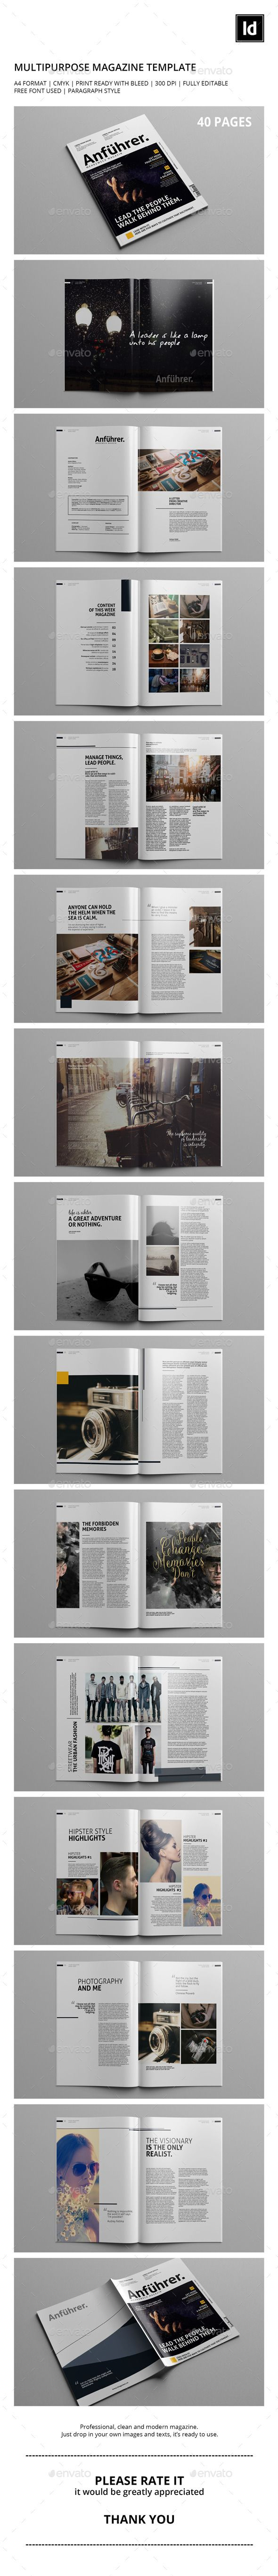 This is a modern and powerful template for a magazine. The template is perfect for any company, organisation, or any other institutions that needs a clean, elegant and professional magazine for their promotional campaign.